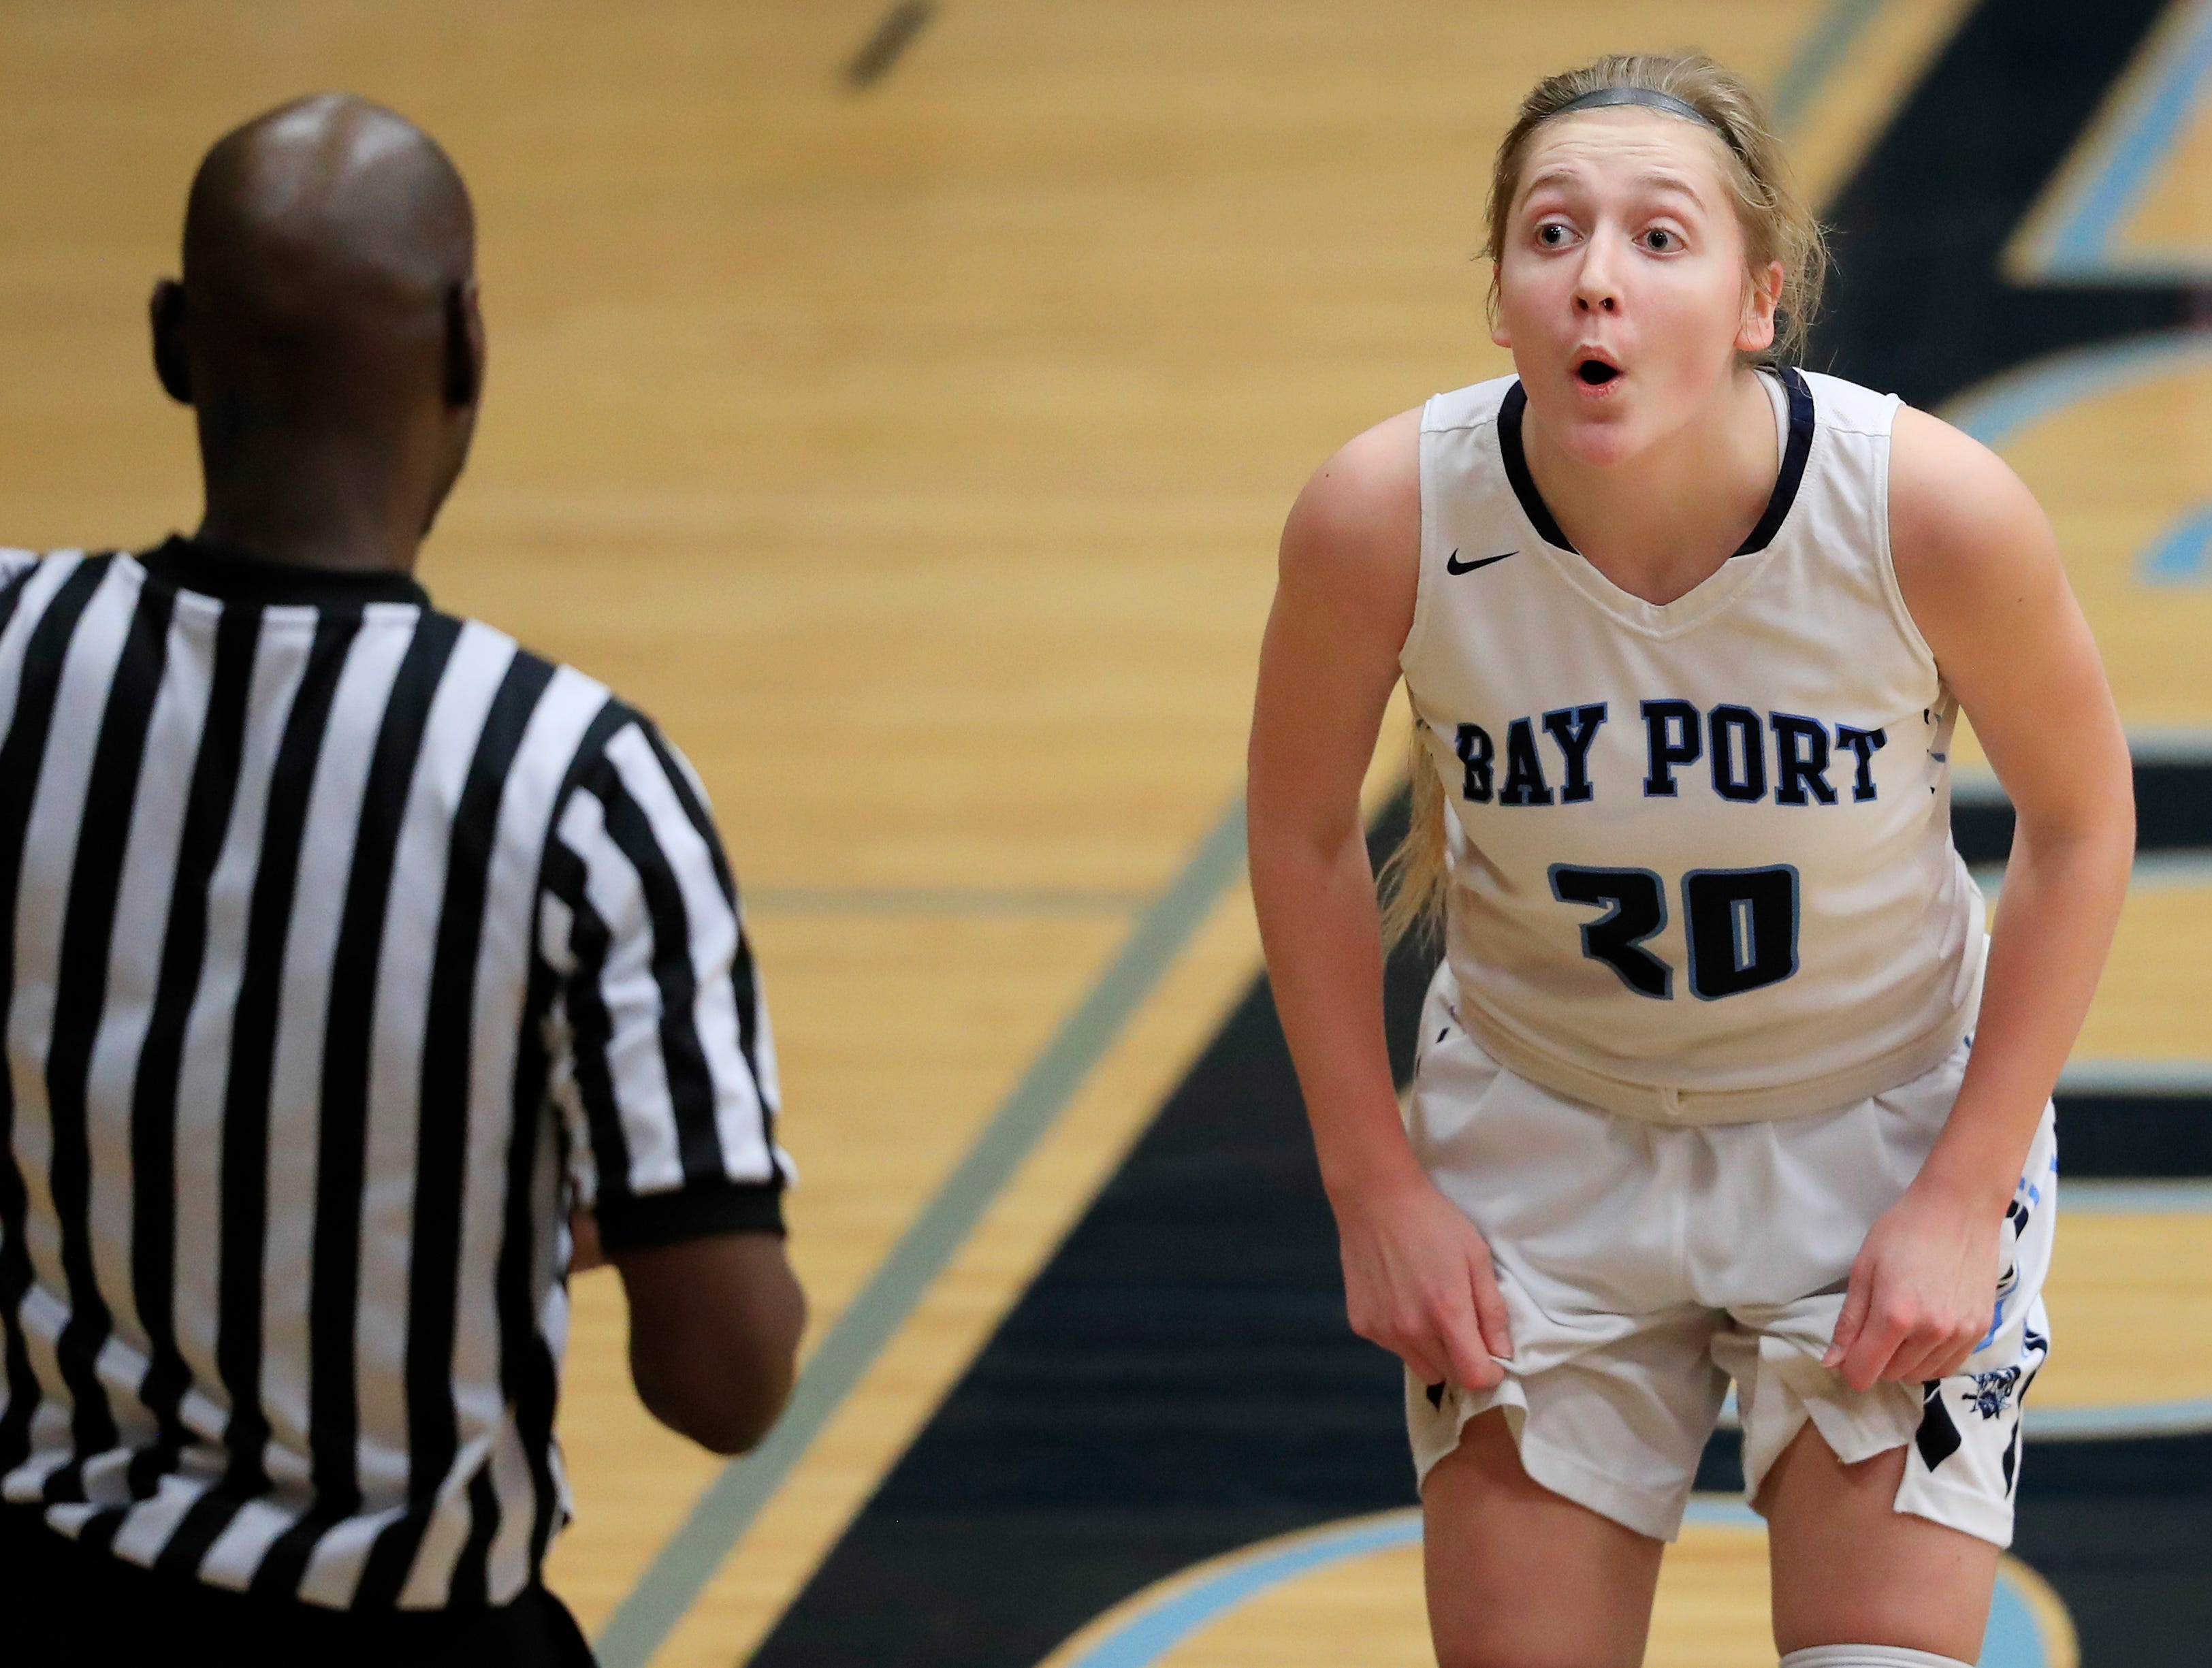 Bay Port's Reagan McIntyre (20) reacts to an out of bounds decision in a FRCC girls basketball game against Green Bay Preble at Bay Port high school on Friday, February 8, 2019 in Suamico, Wis.